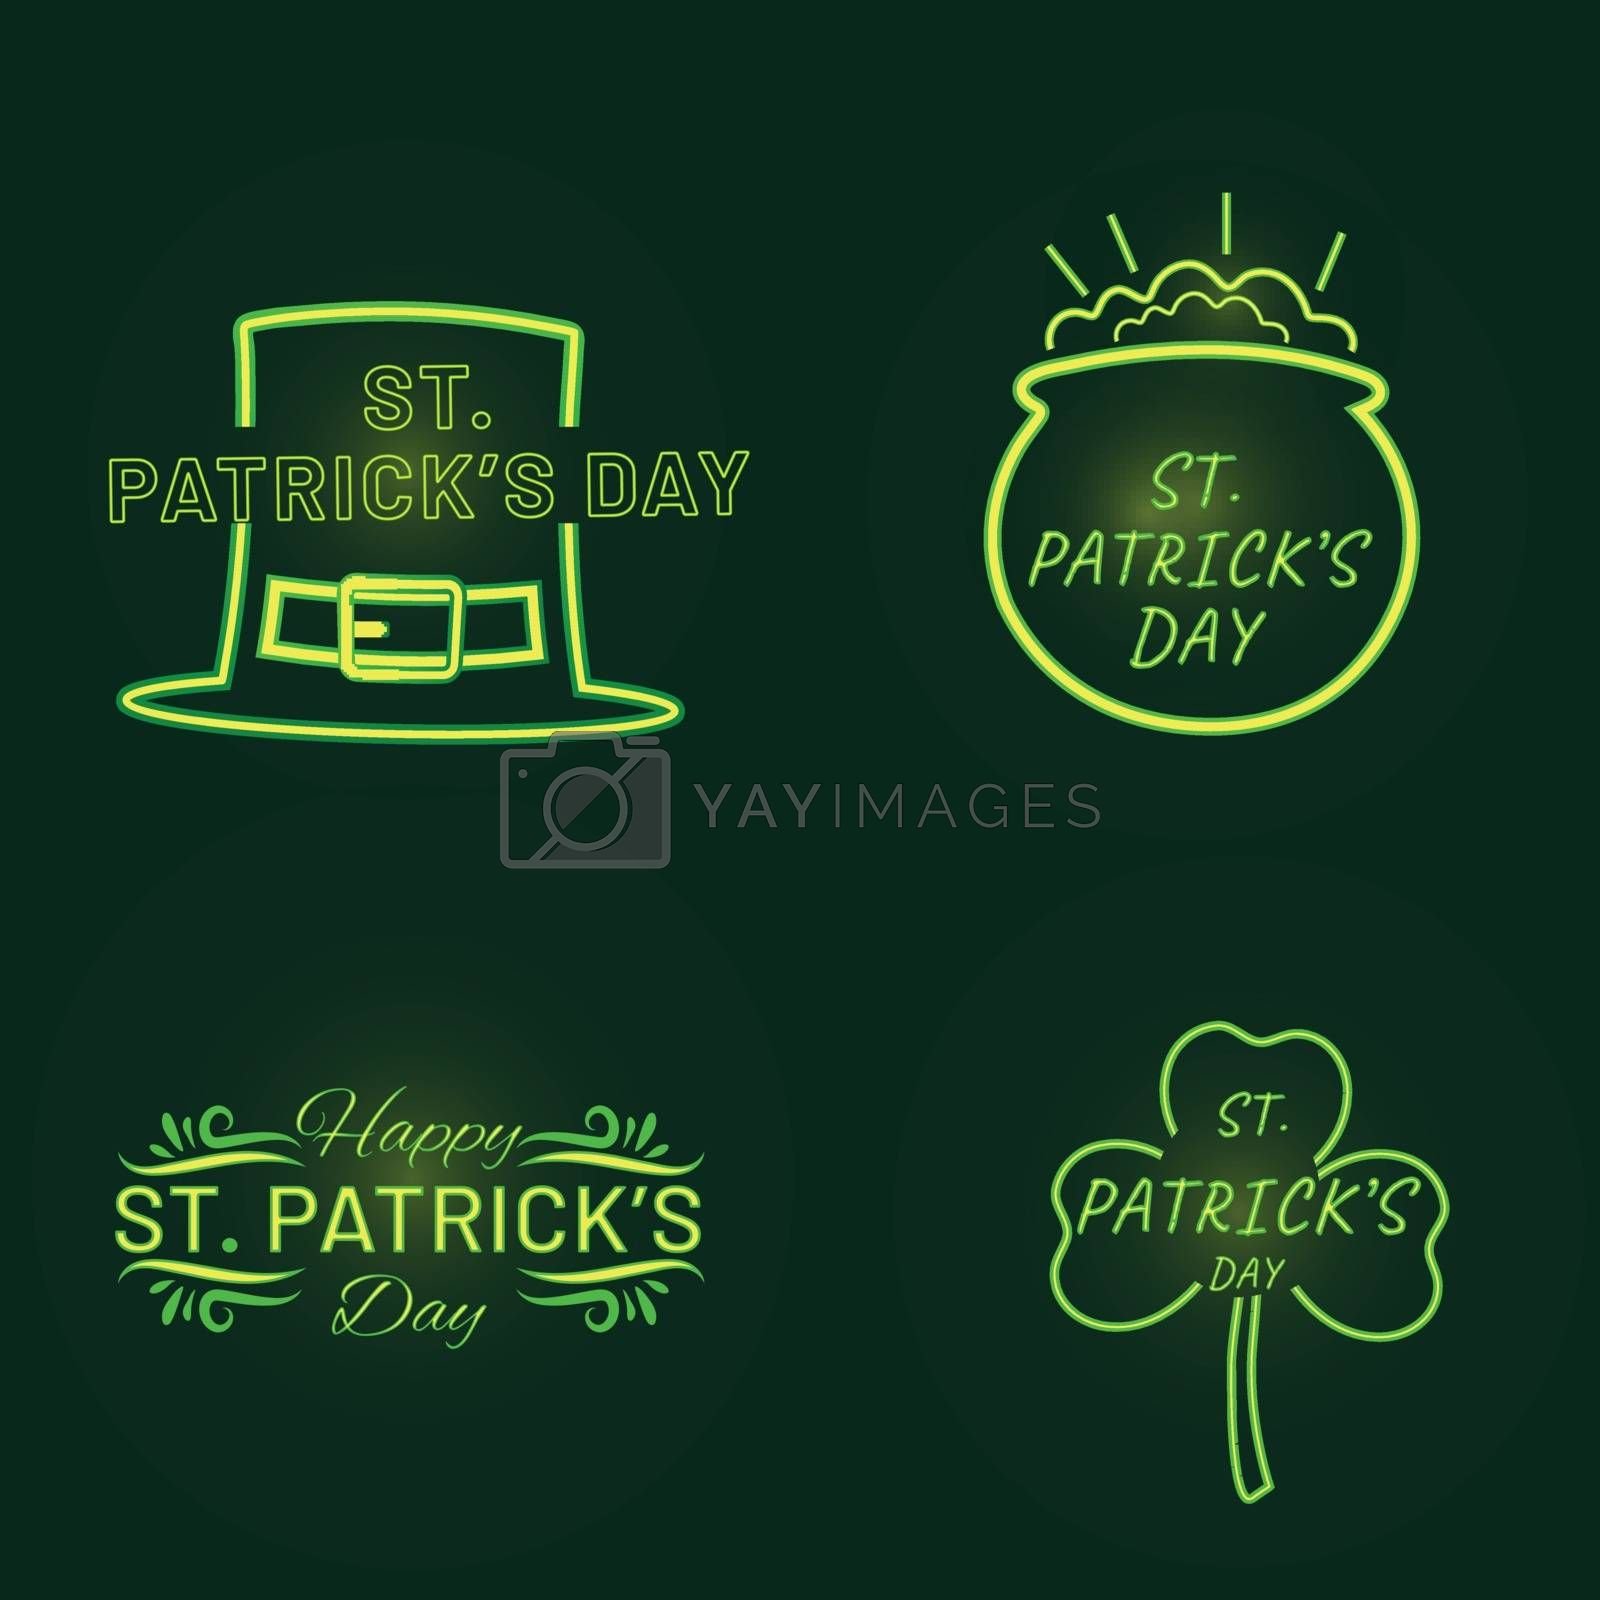 Royalty free image of St. Patrick's Day typography Set with festival elements on black by aispl